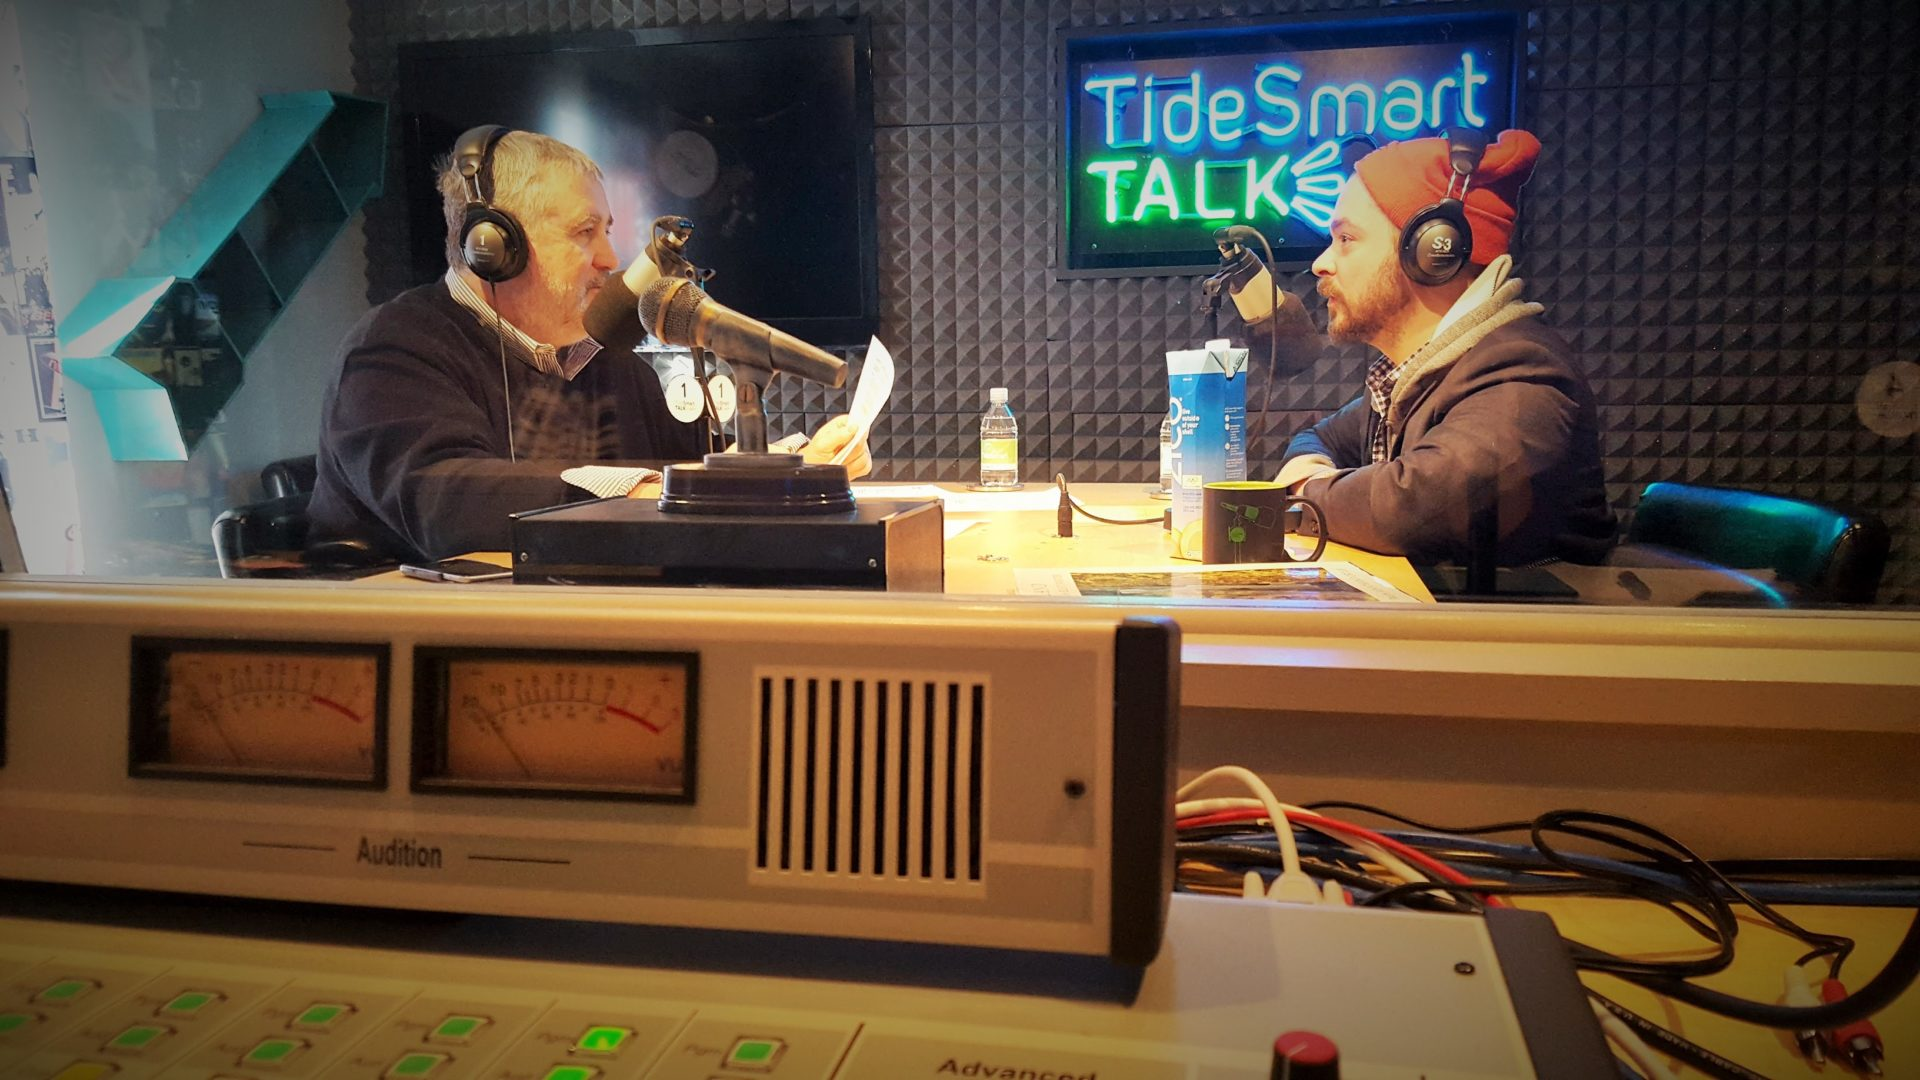 Host of TideSmart Talk with Stevoe, Steve Woods, welcomed ICELANDx207 artist, Justin Levesque (at right).